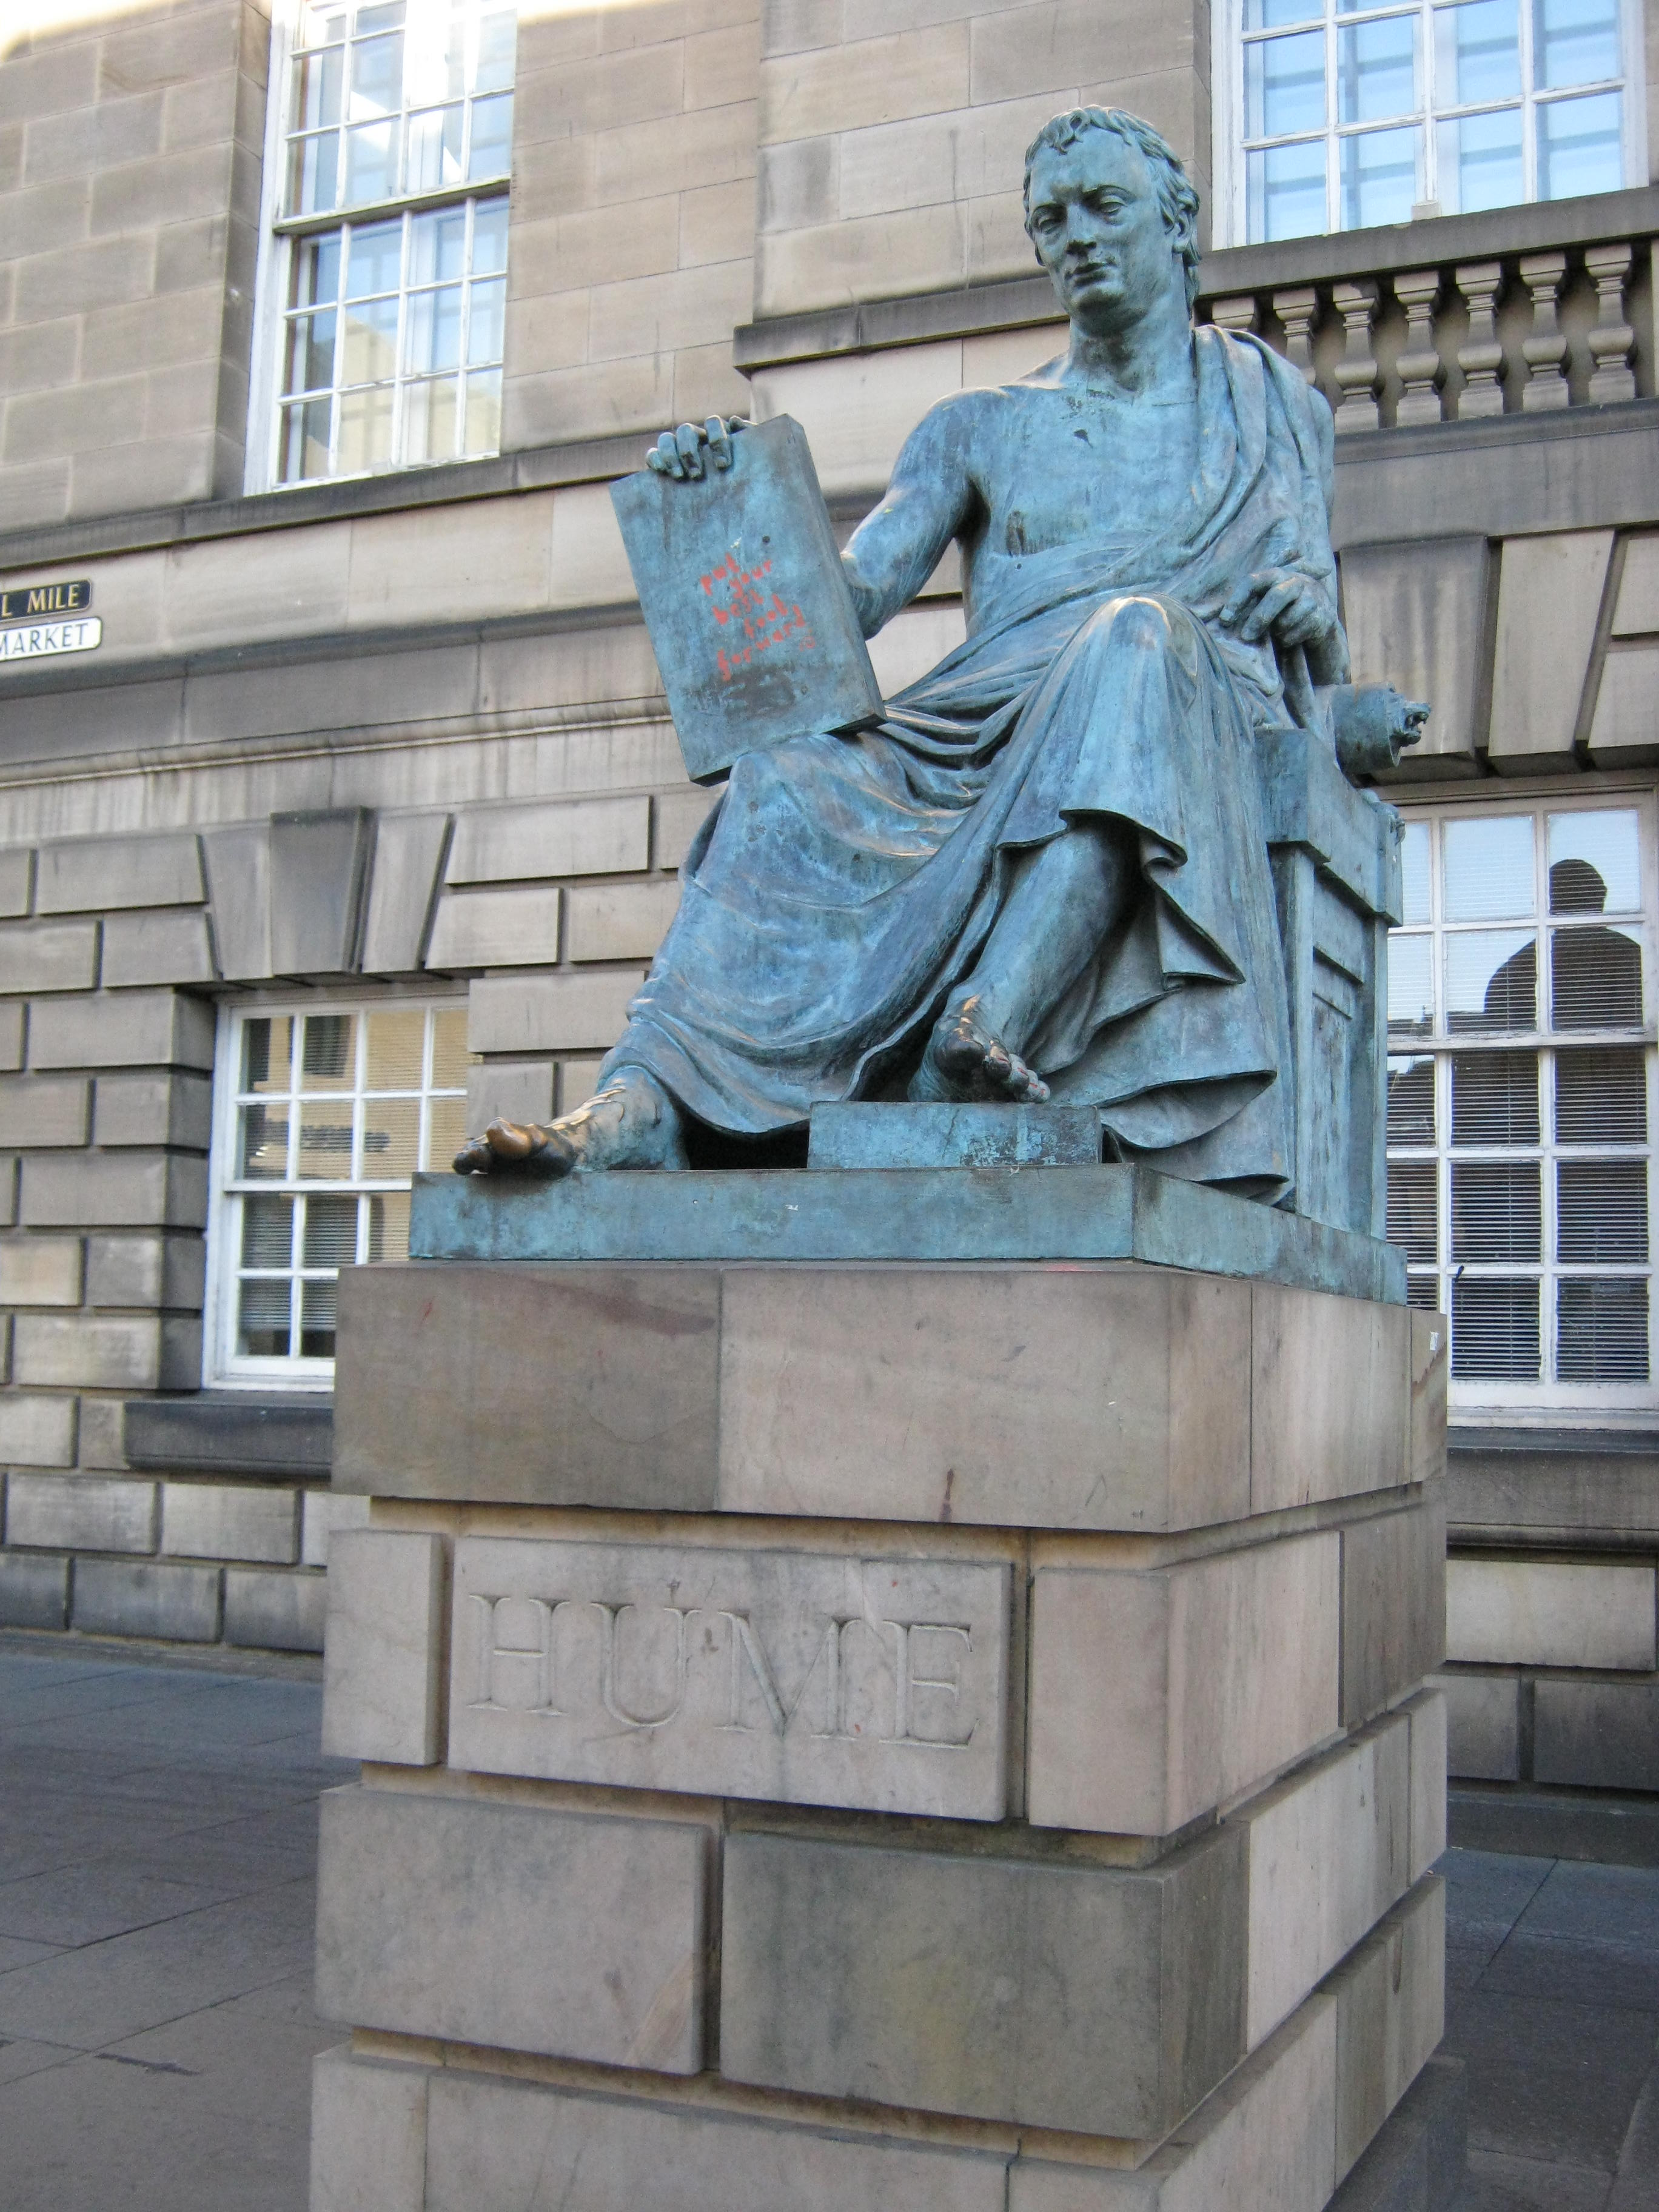 Philosophical Geocaching Part II: Hume - Posted on January